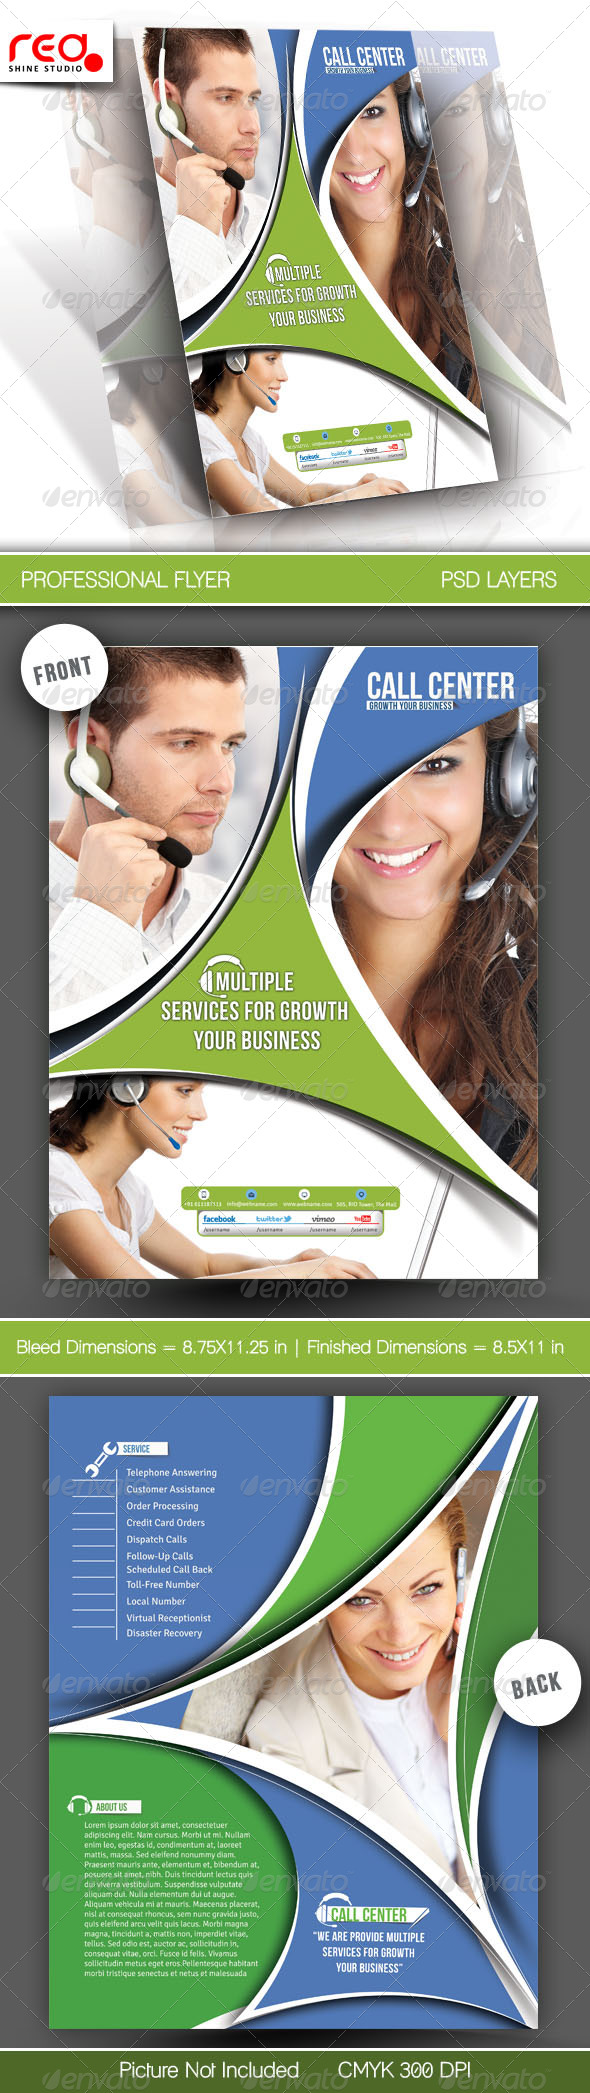 GraphicRiver Customer Support Flyer & Poster Template 2 5973614